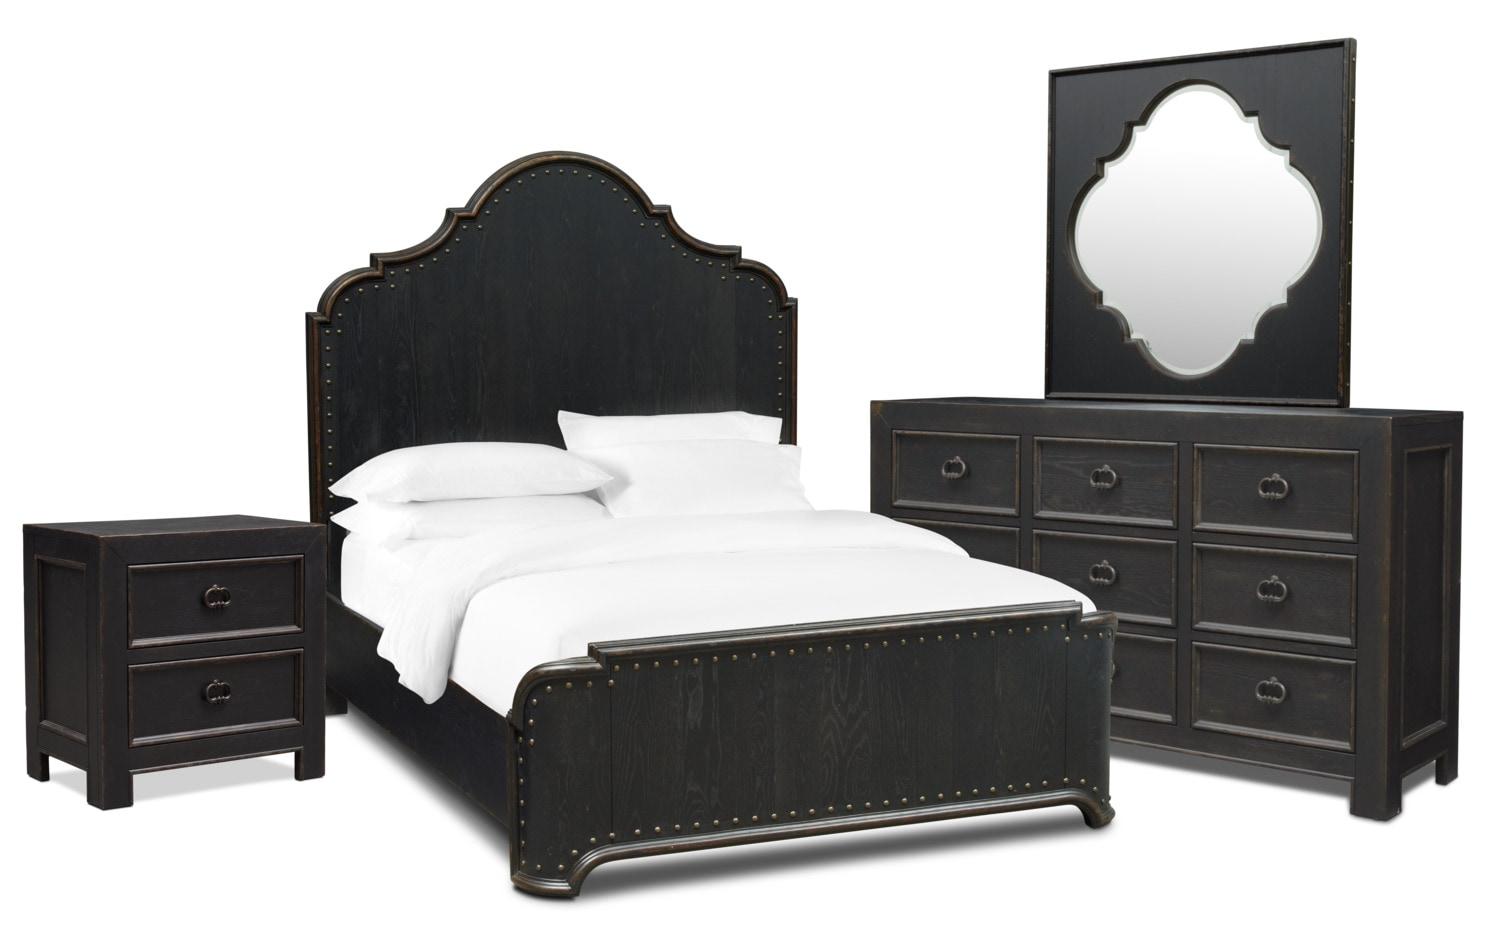 Bedroom Furniture - Lennon 6-Piece Bedroom Set with Nightstand, Dresser and Mirror